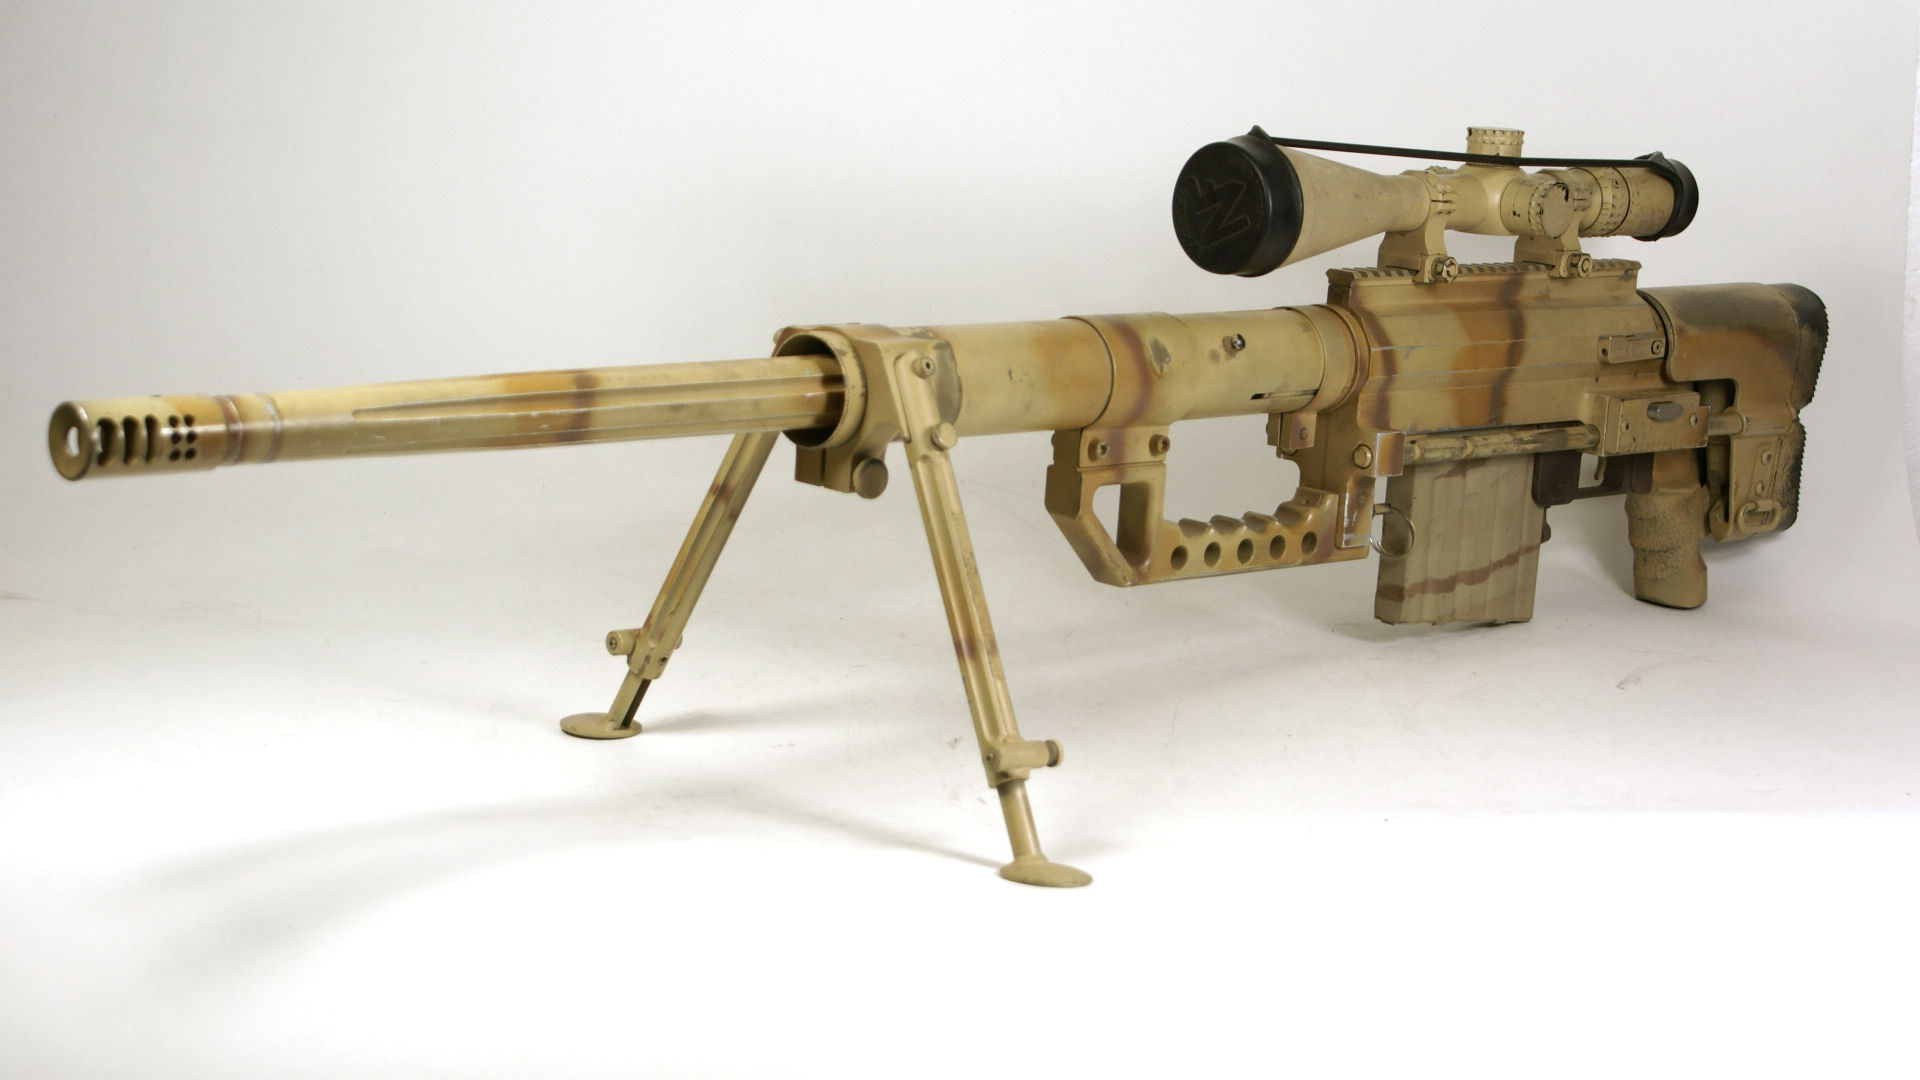 M200 Intervention Sniper Rifle Weapons Guns Military Wallpaper